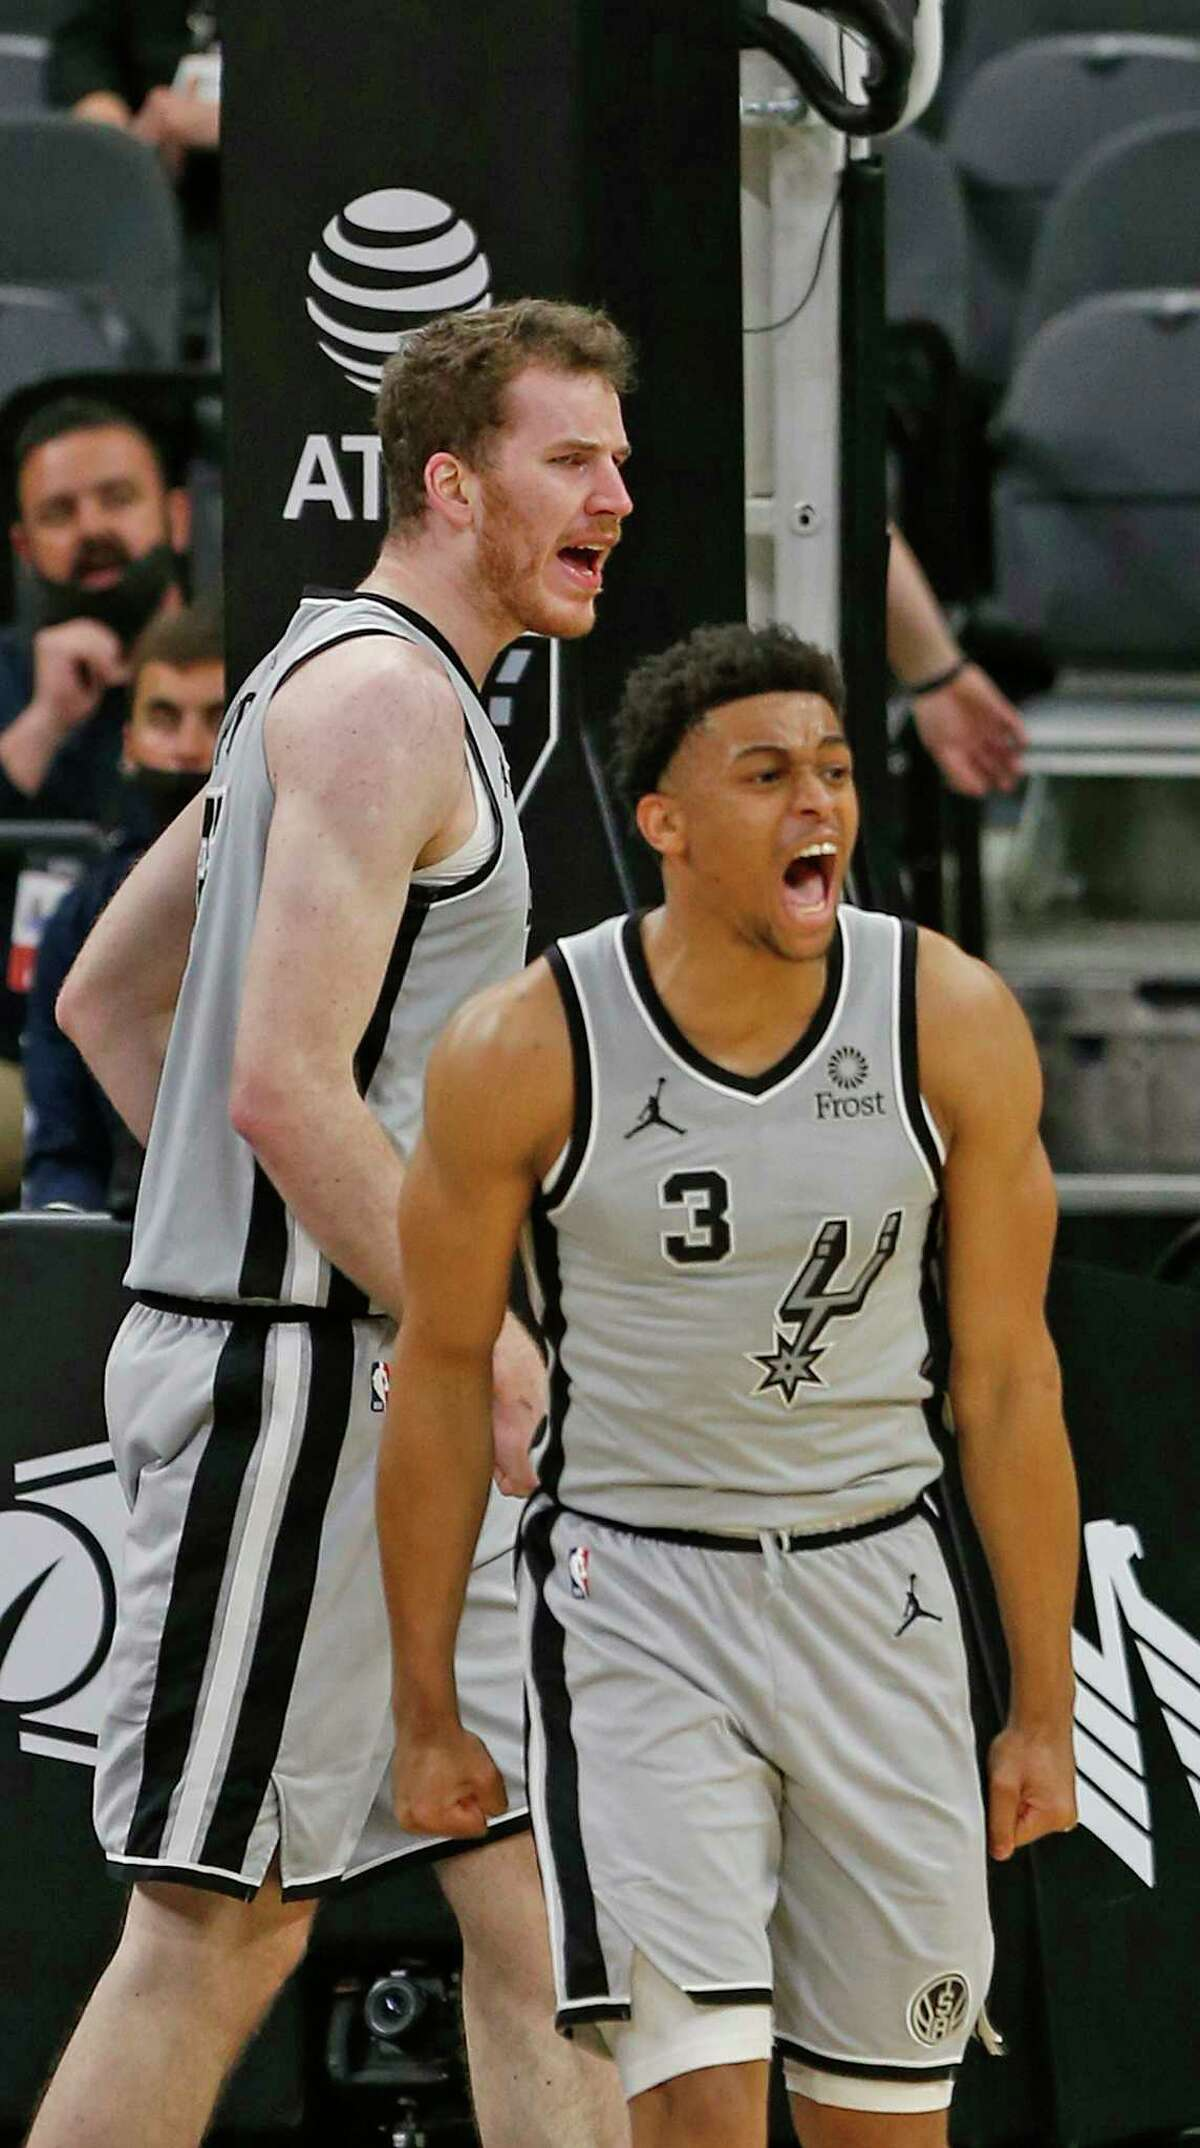 Keldon Johnson #3 of the San Antonio Spurs reacts after a Jakob Poeltl #25,in background against the Indiana Pacers in the first half half on Saturday, April 3, 2021 at the AT&T Center